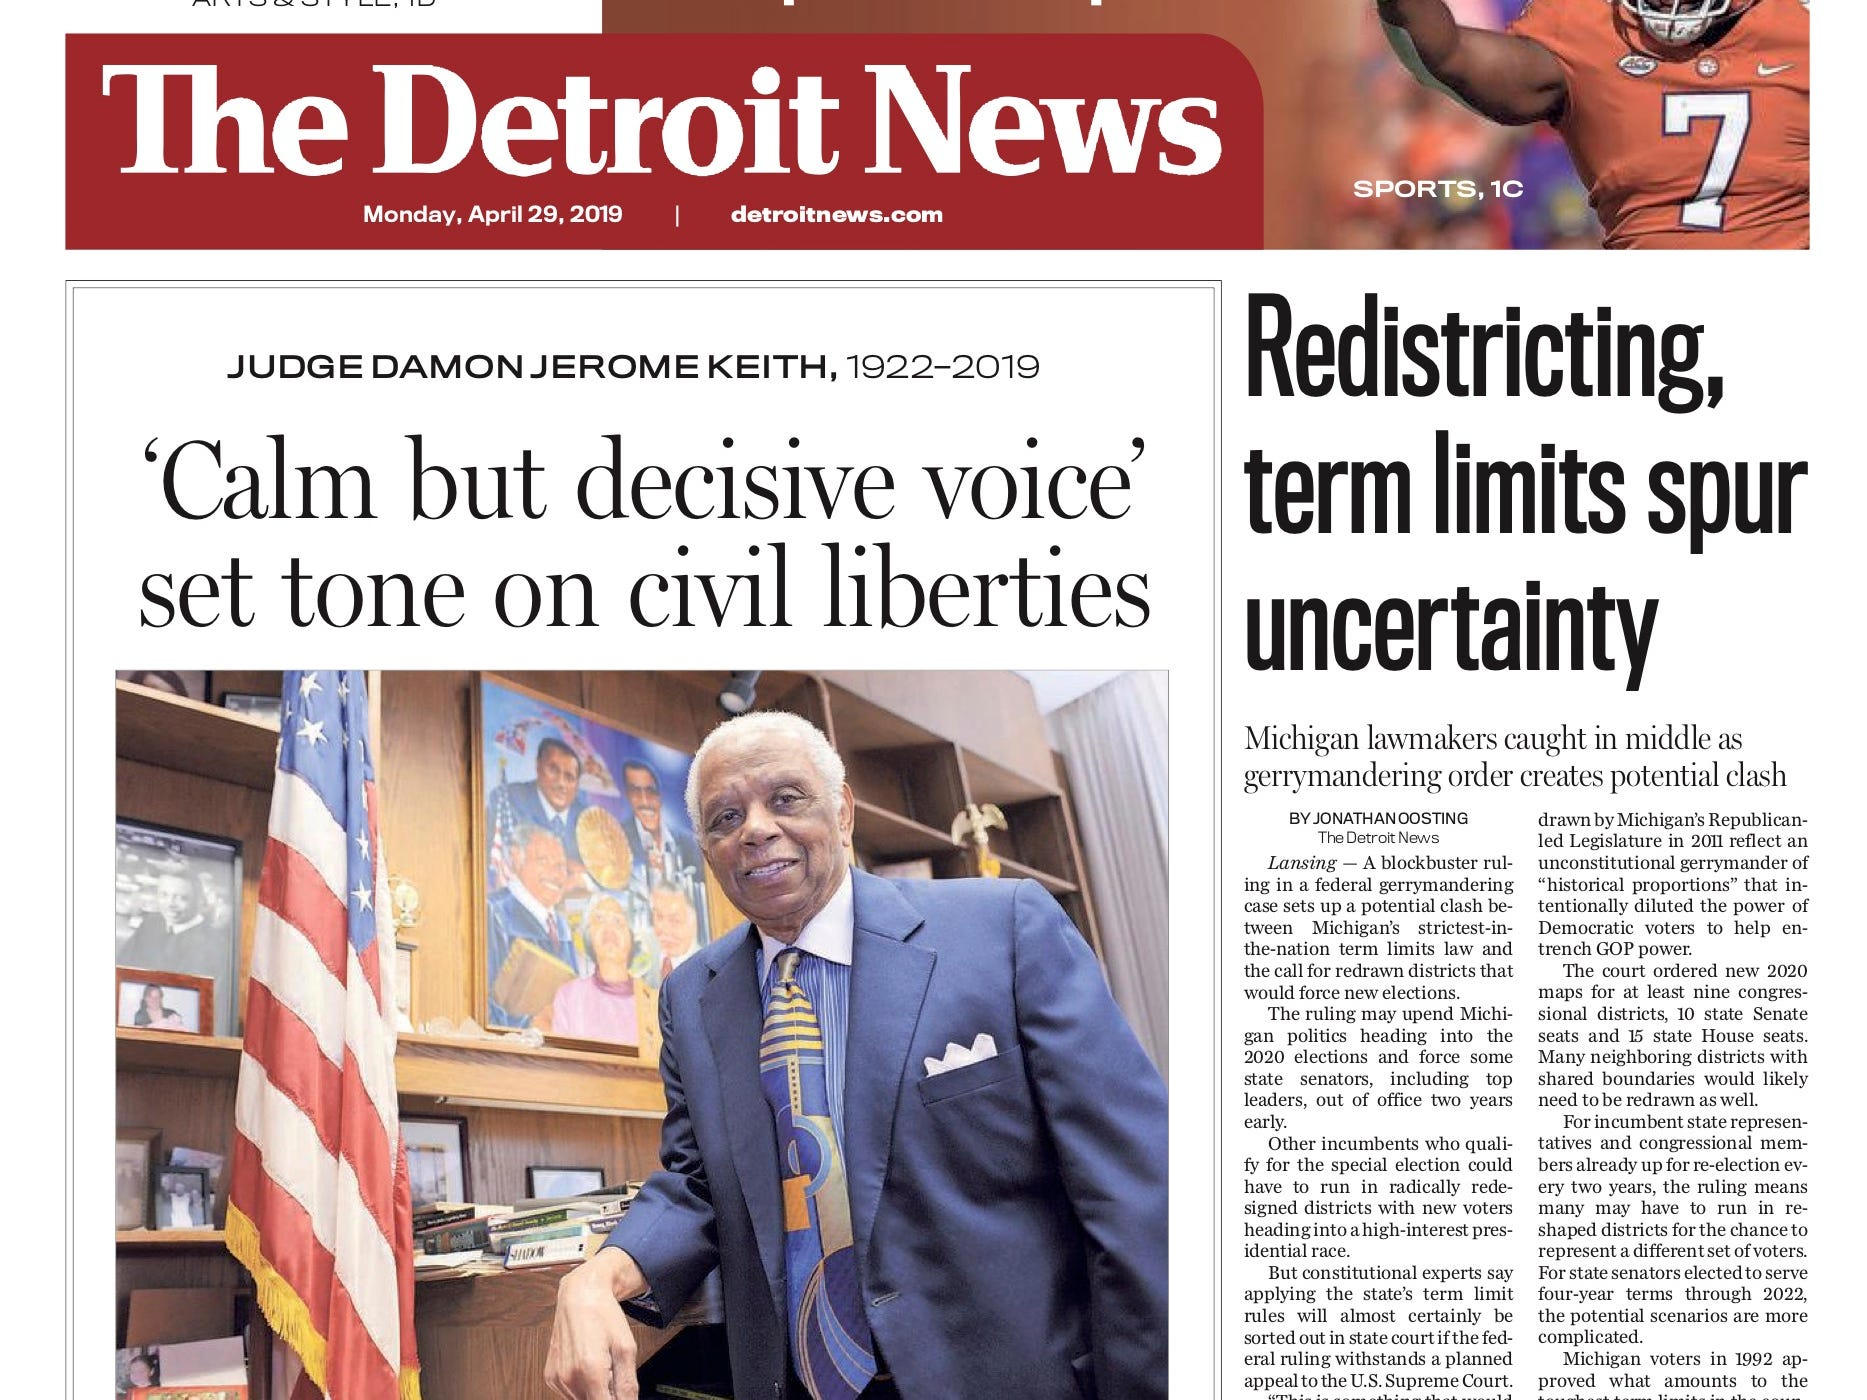 The front page of the Detroit News on April 29, 2019